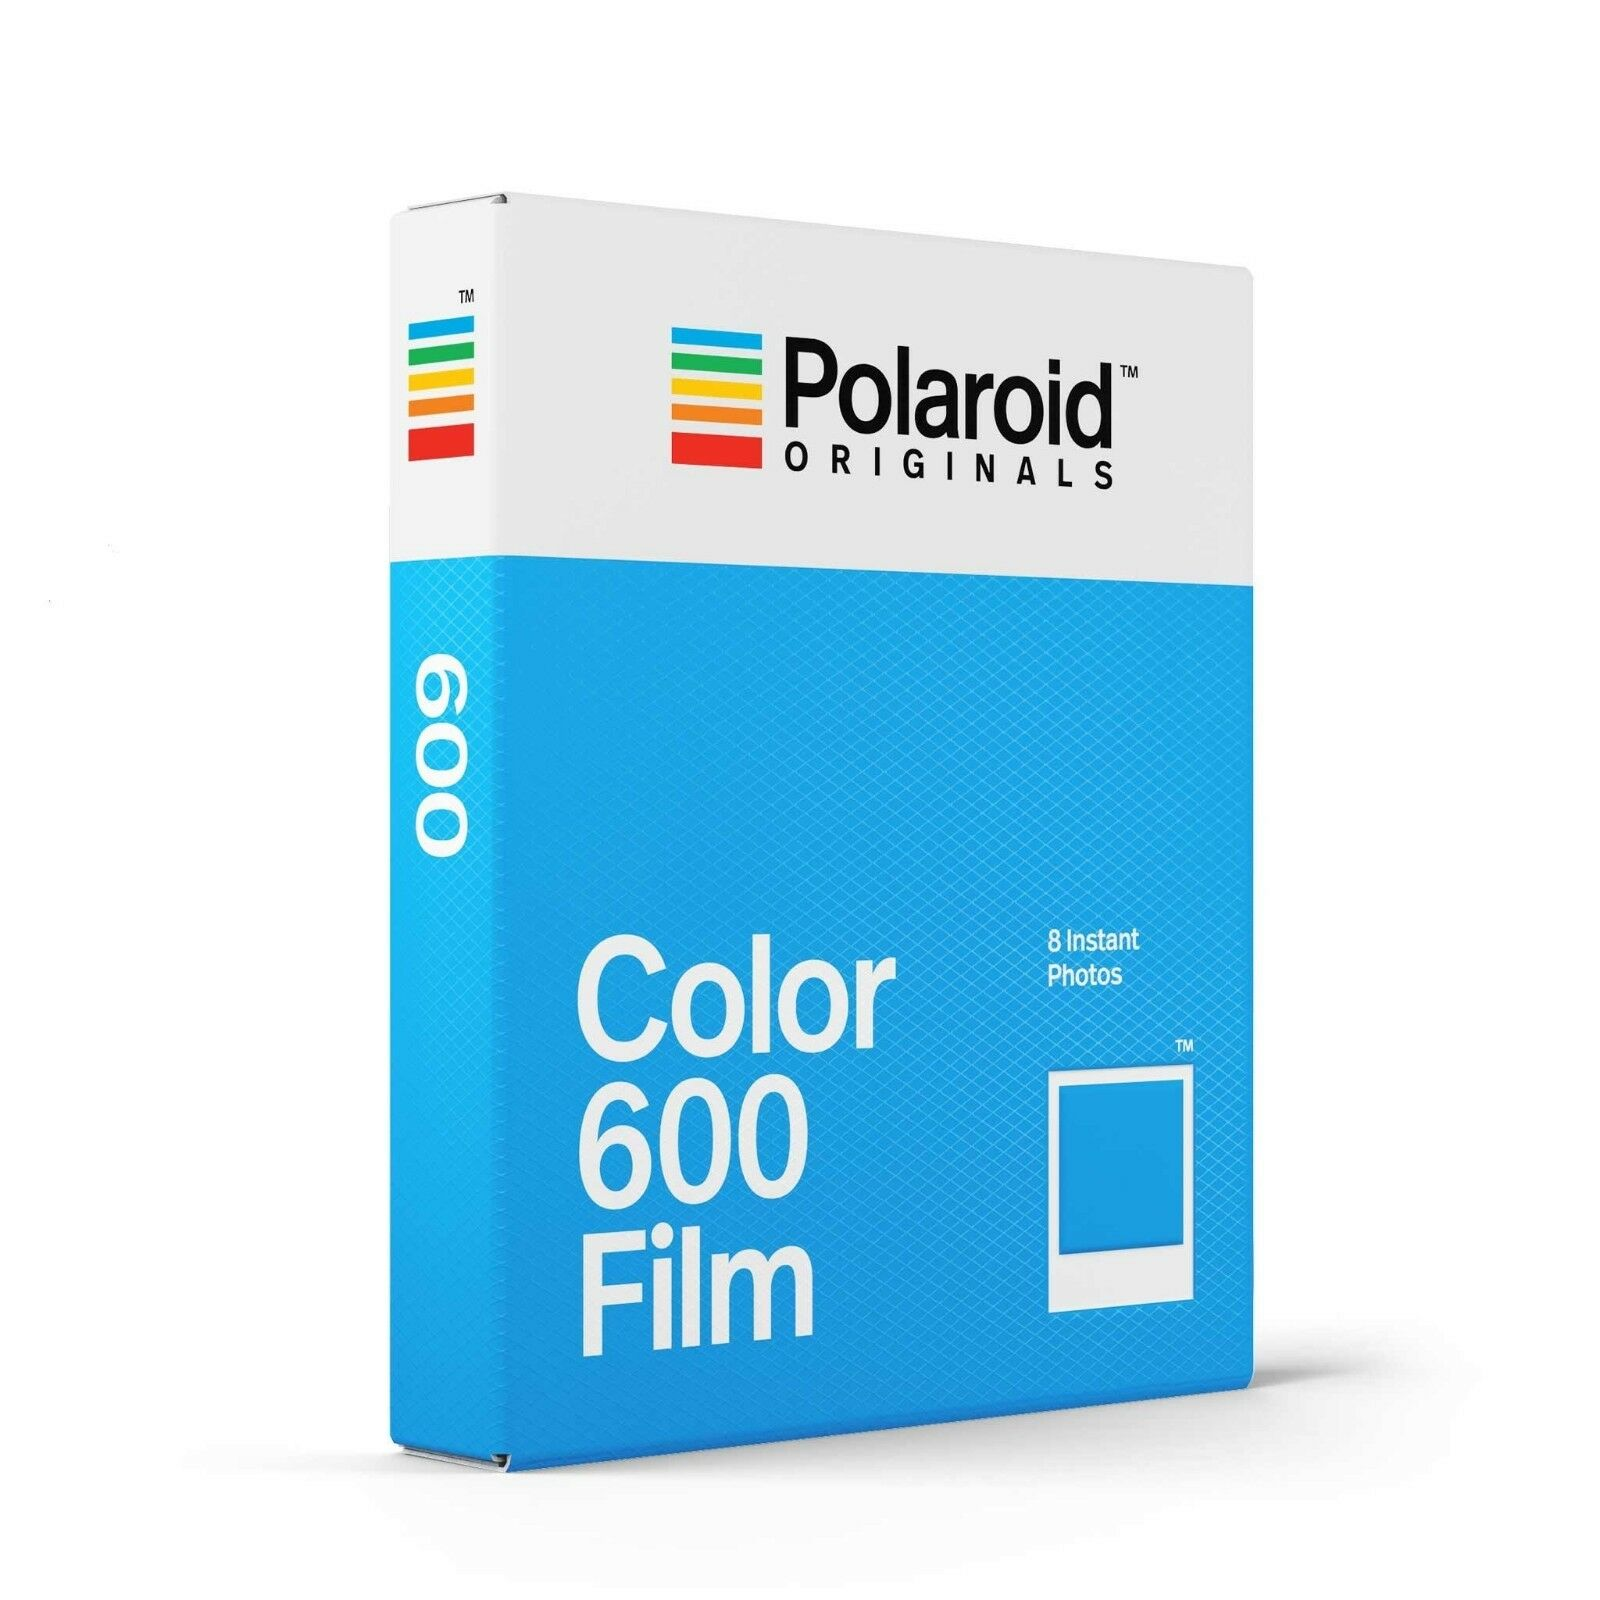 Polaroid Originals 600 Instant Color Film 4670 for Polaroid 600 Type Cameras